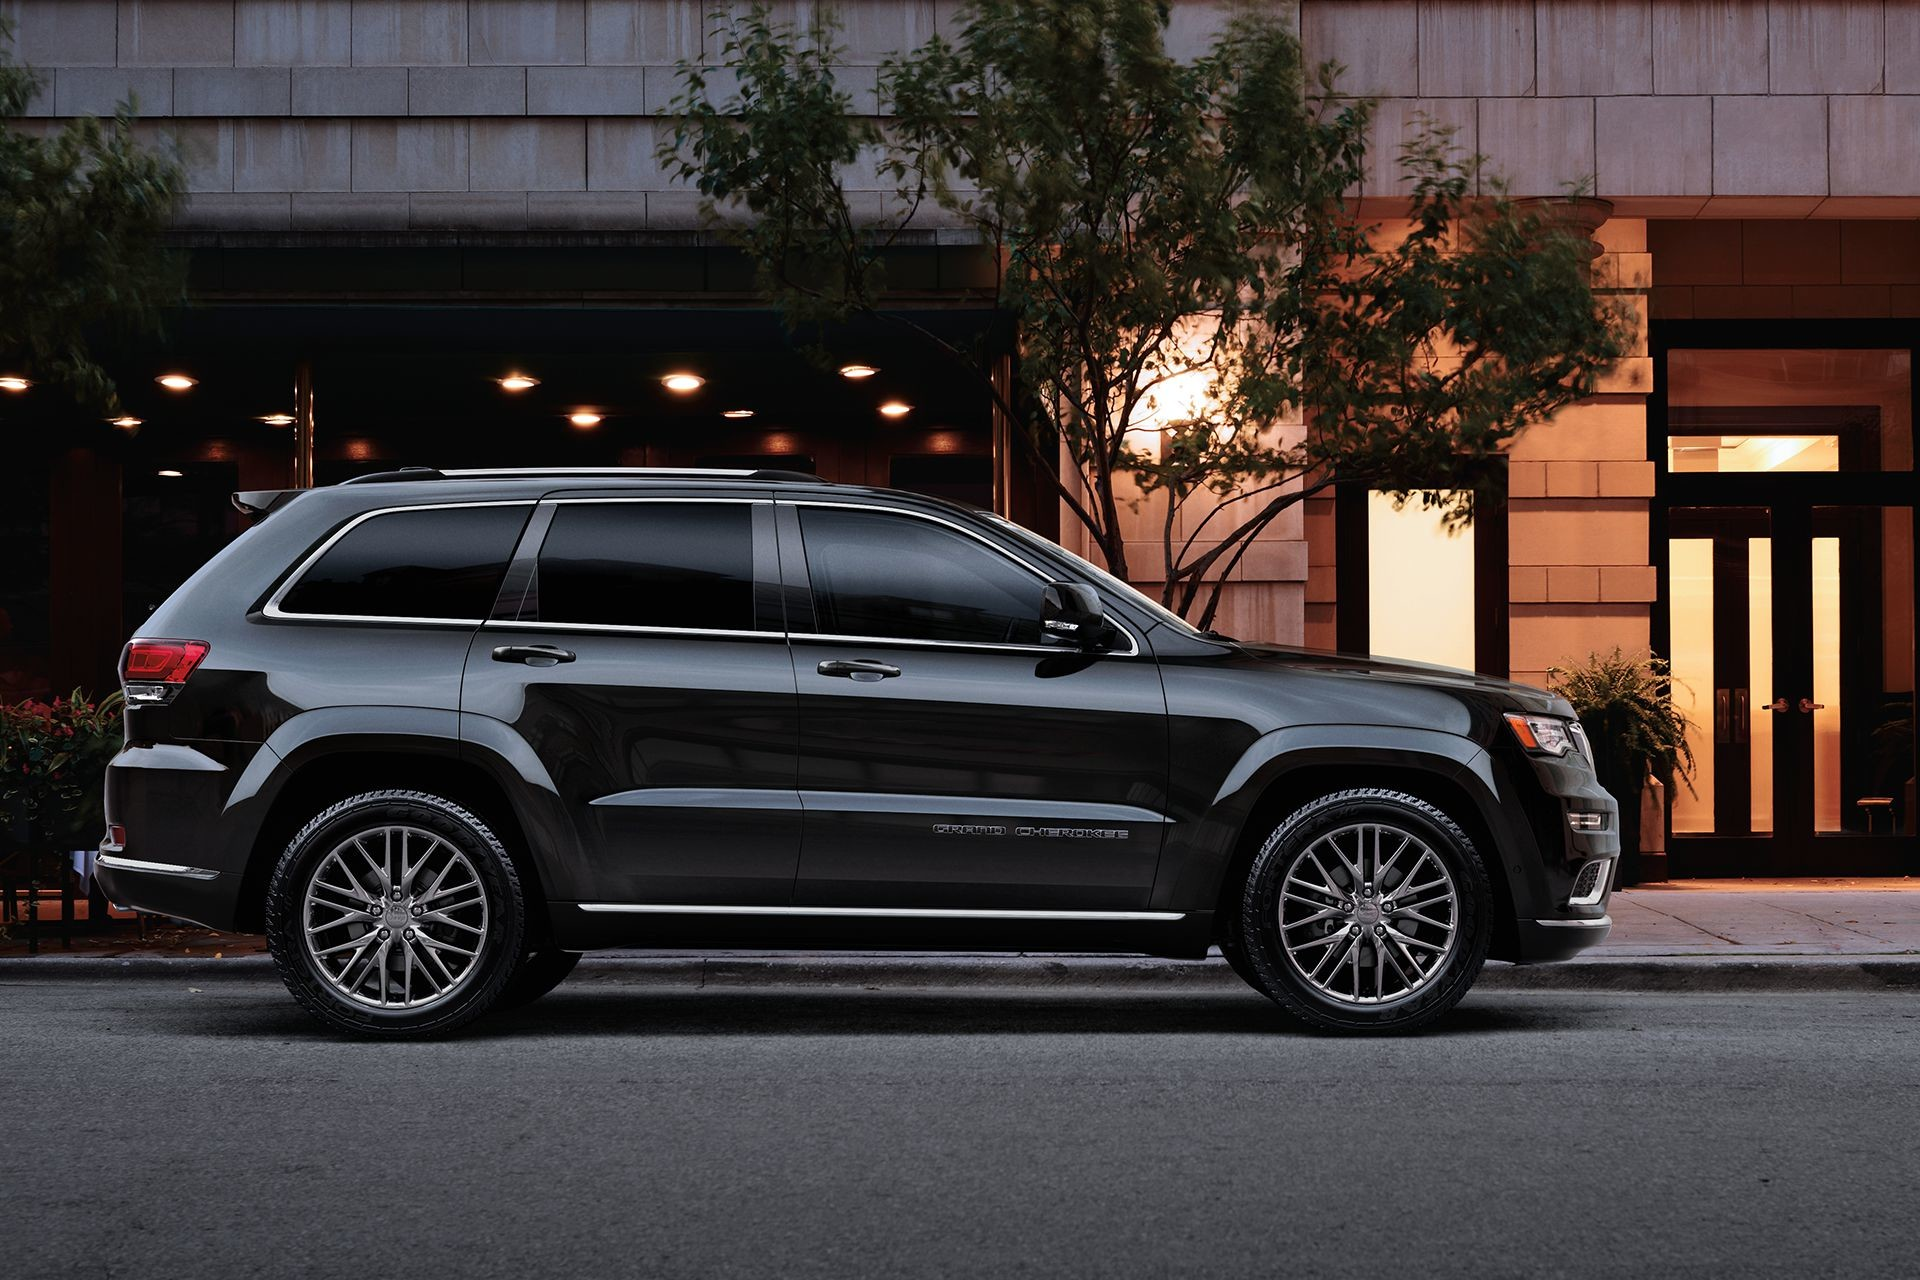 2018 Jeep Grand Cherokee SUV side view at night